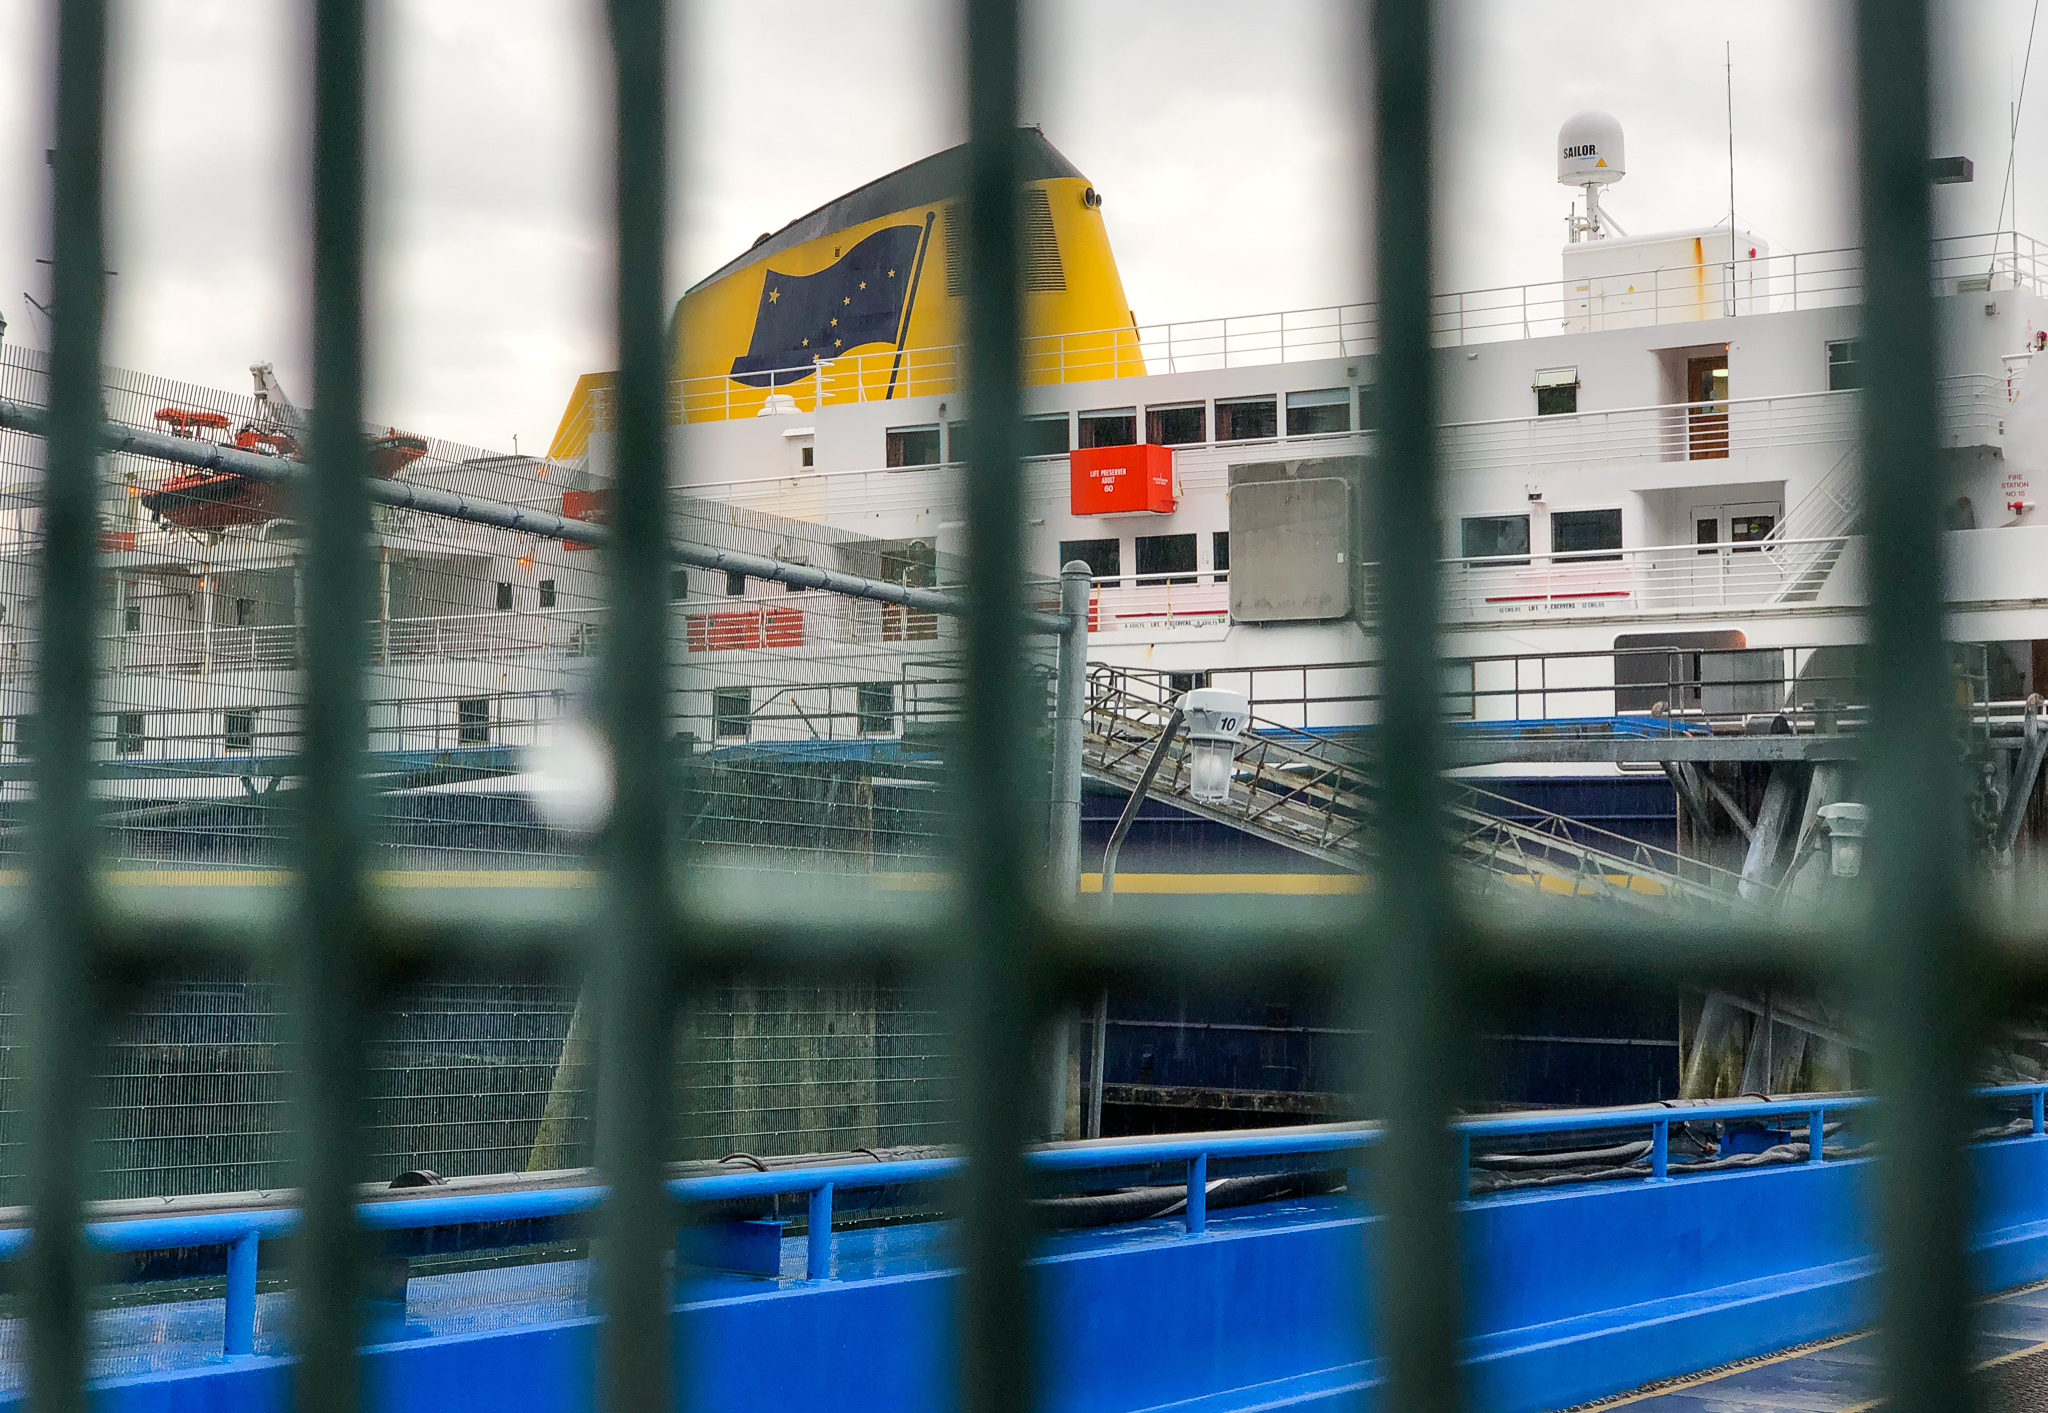 As ferry strike continues, communities must find alternatives